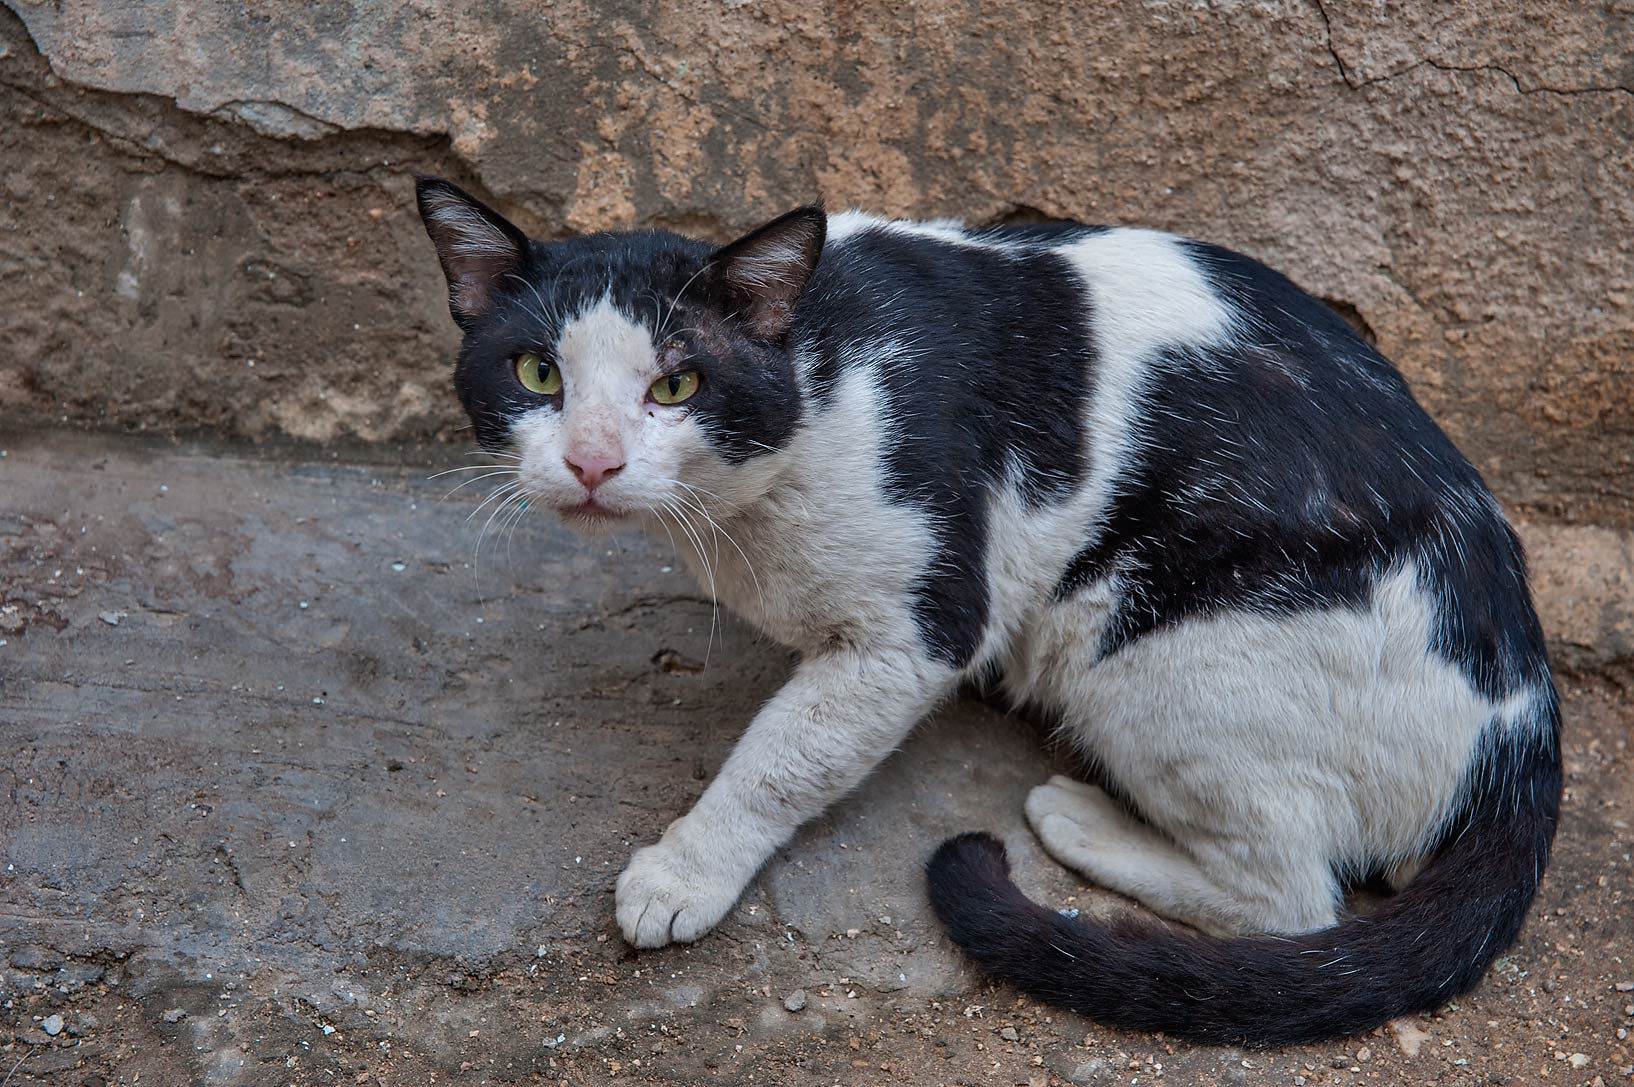 Suspicious black and white cat near Abdullah Bin Thani St. in Musheirib area. Doha, Qatar